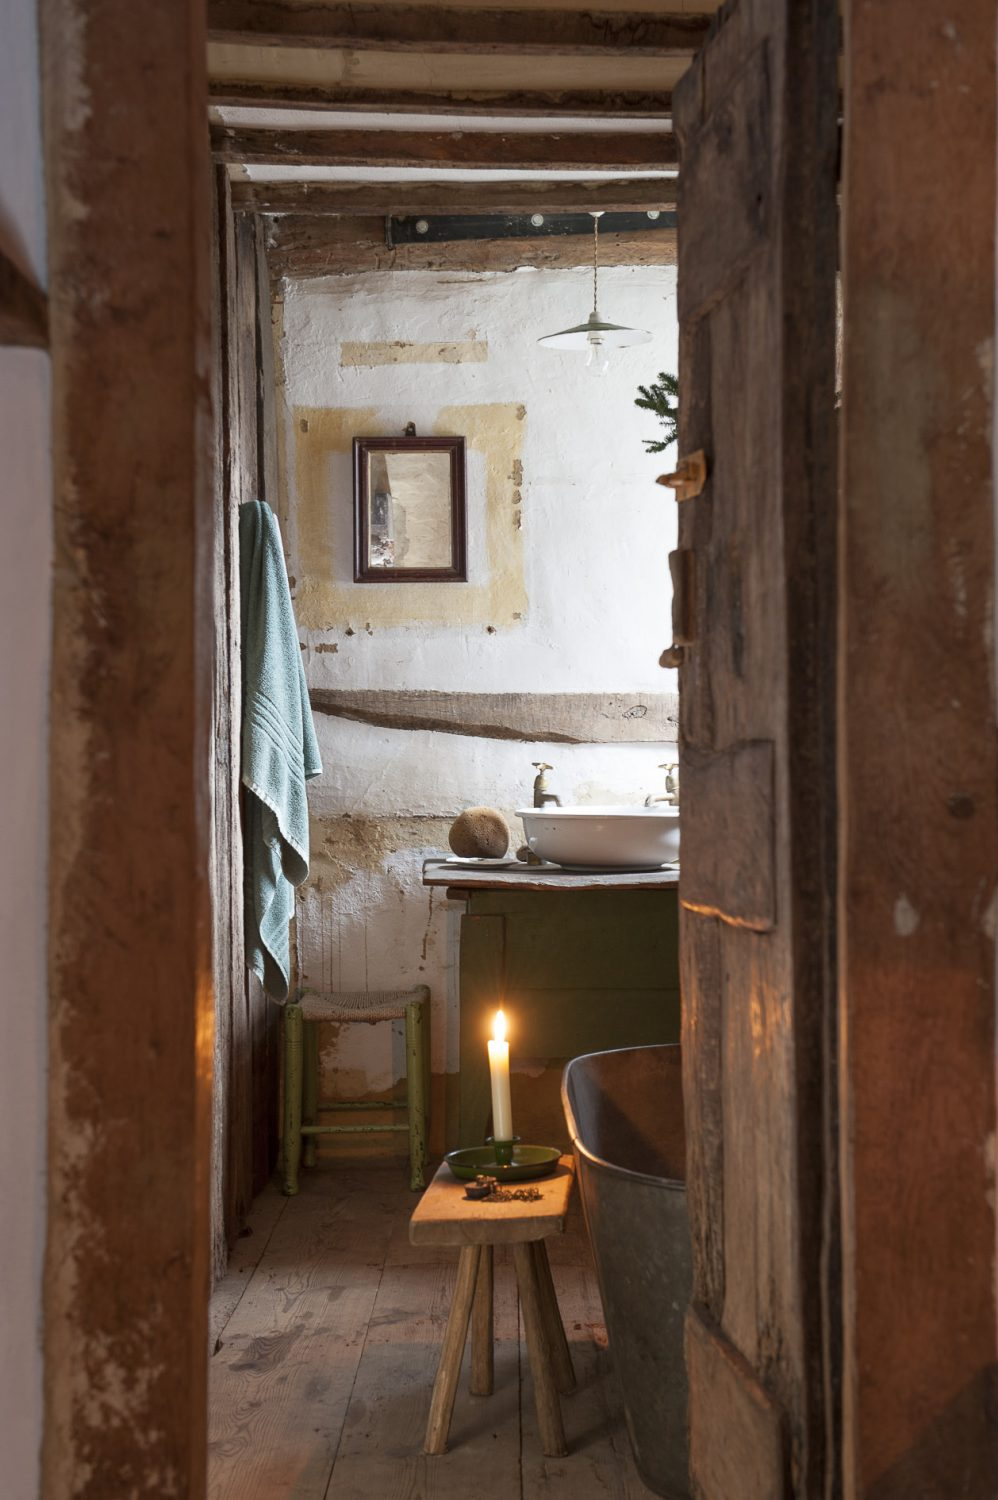 The house's only loo on the first floor nestles in a passageway between the bathroom and drawing room